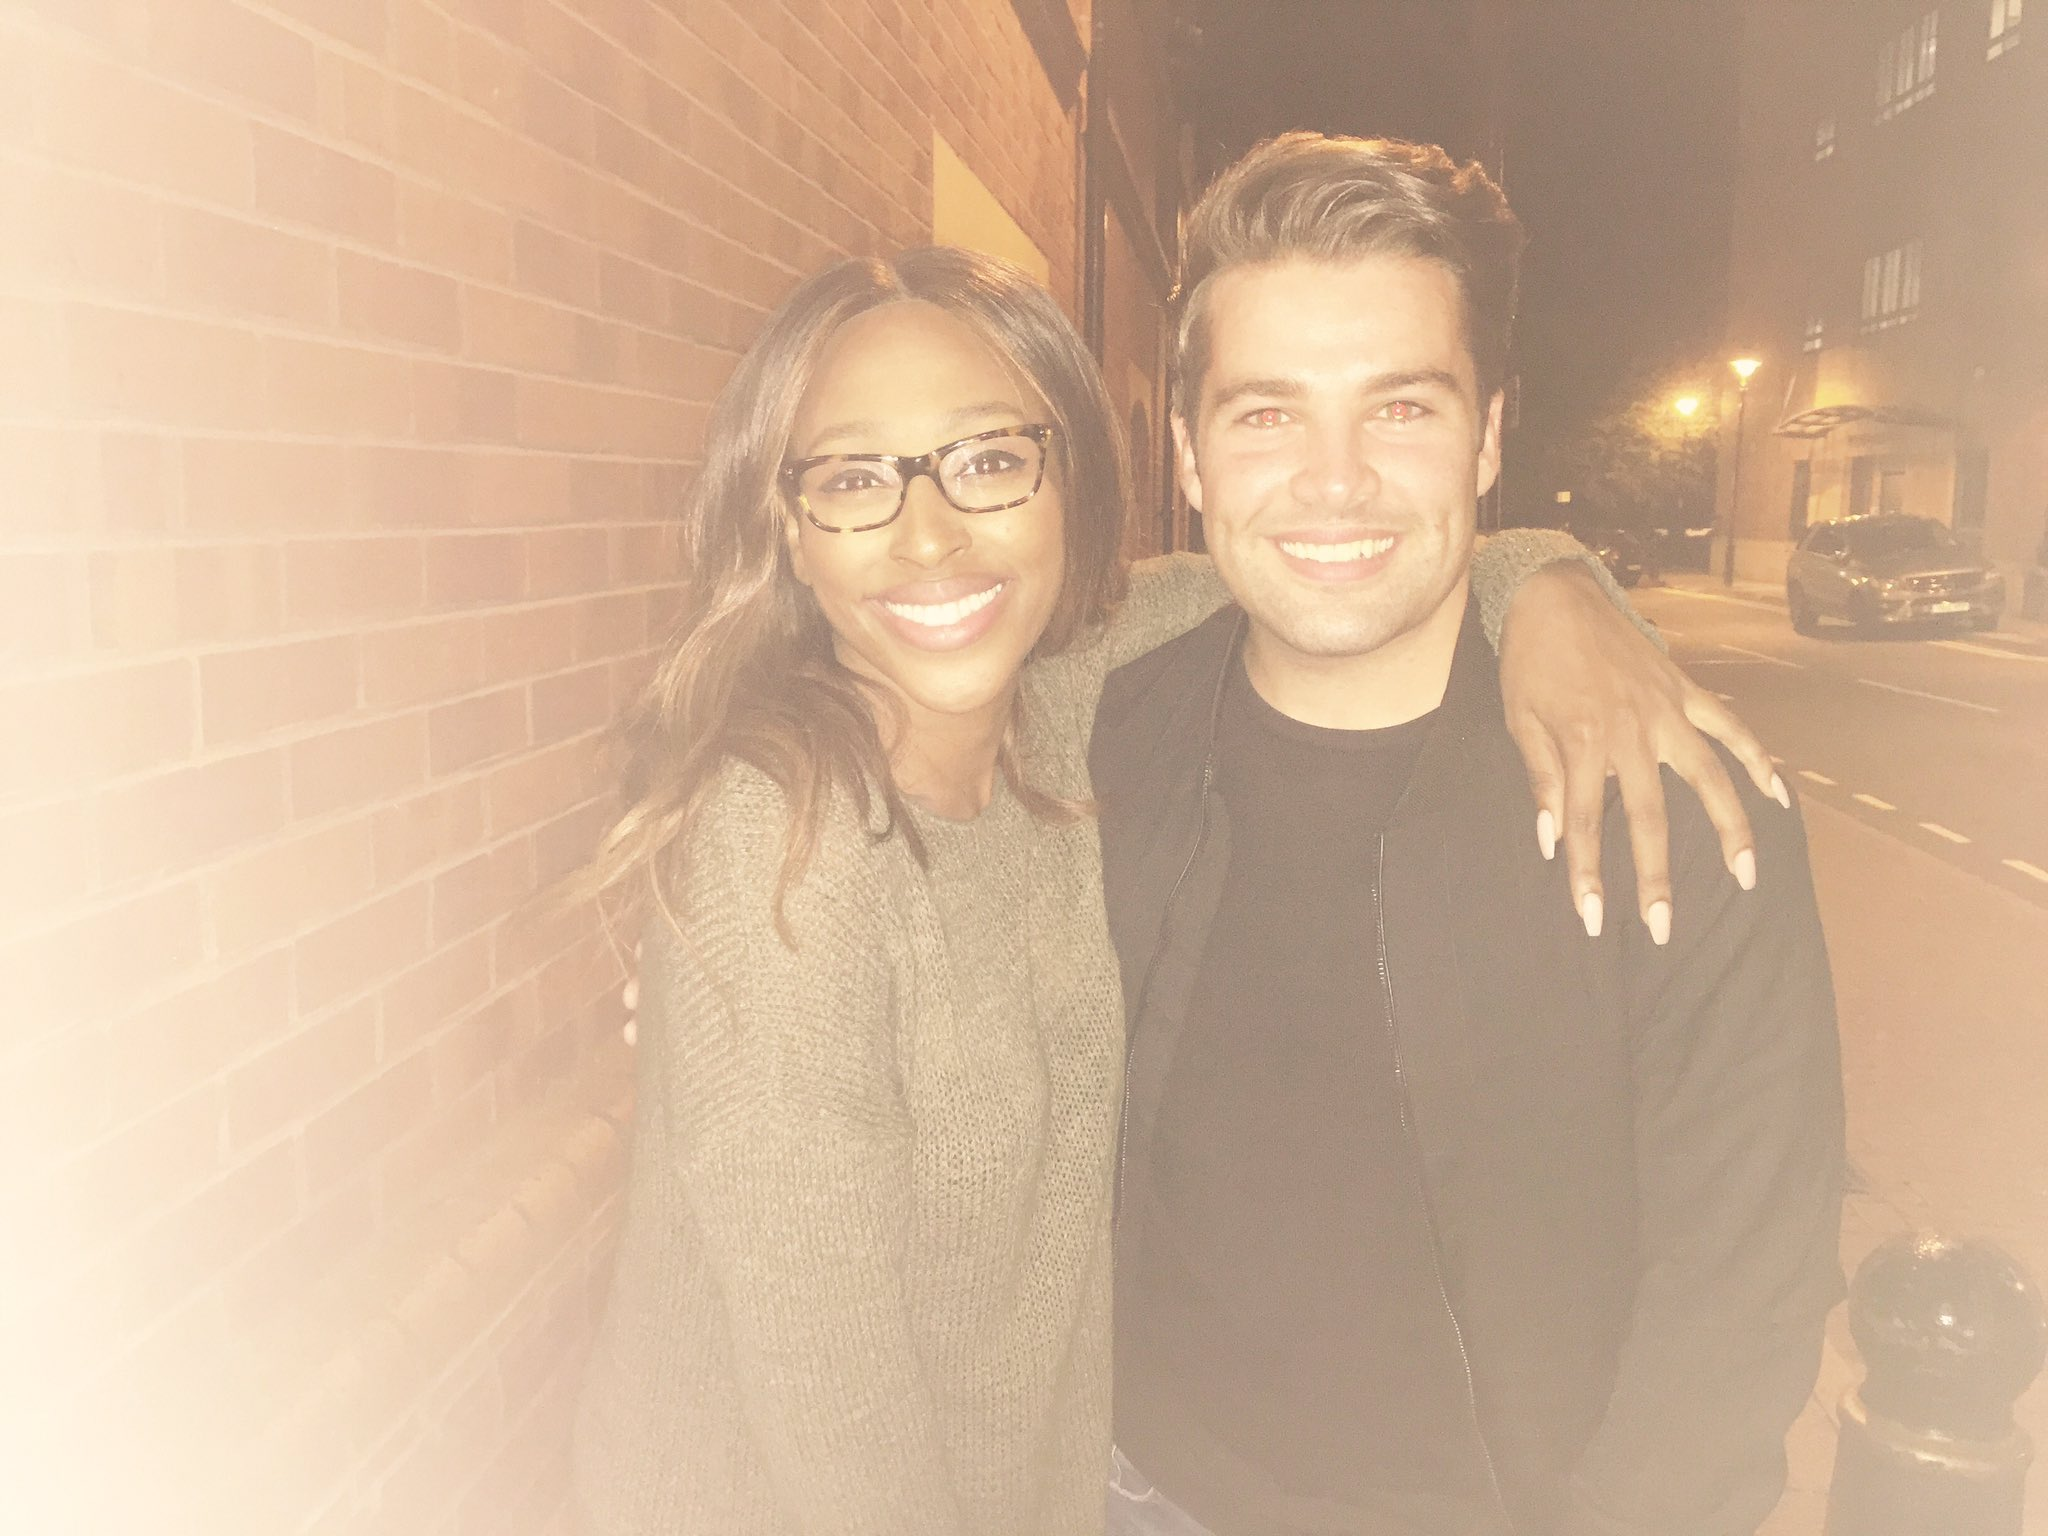 Lovely seeing you last night my lovely! Always got time for this amazing soul right here ! @joemcelderry91 ❤️ https://t.co/lmWT7v3kZ1